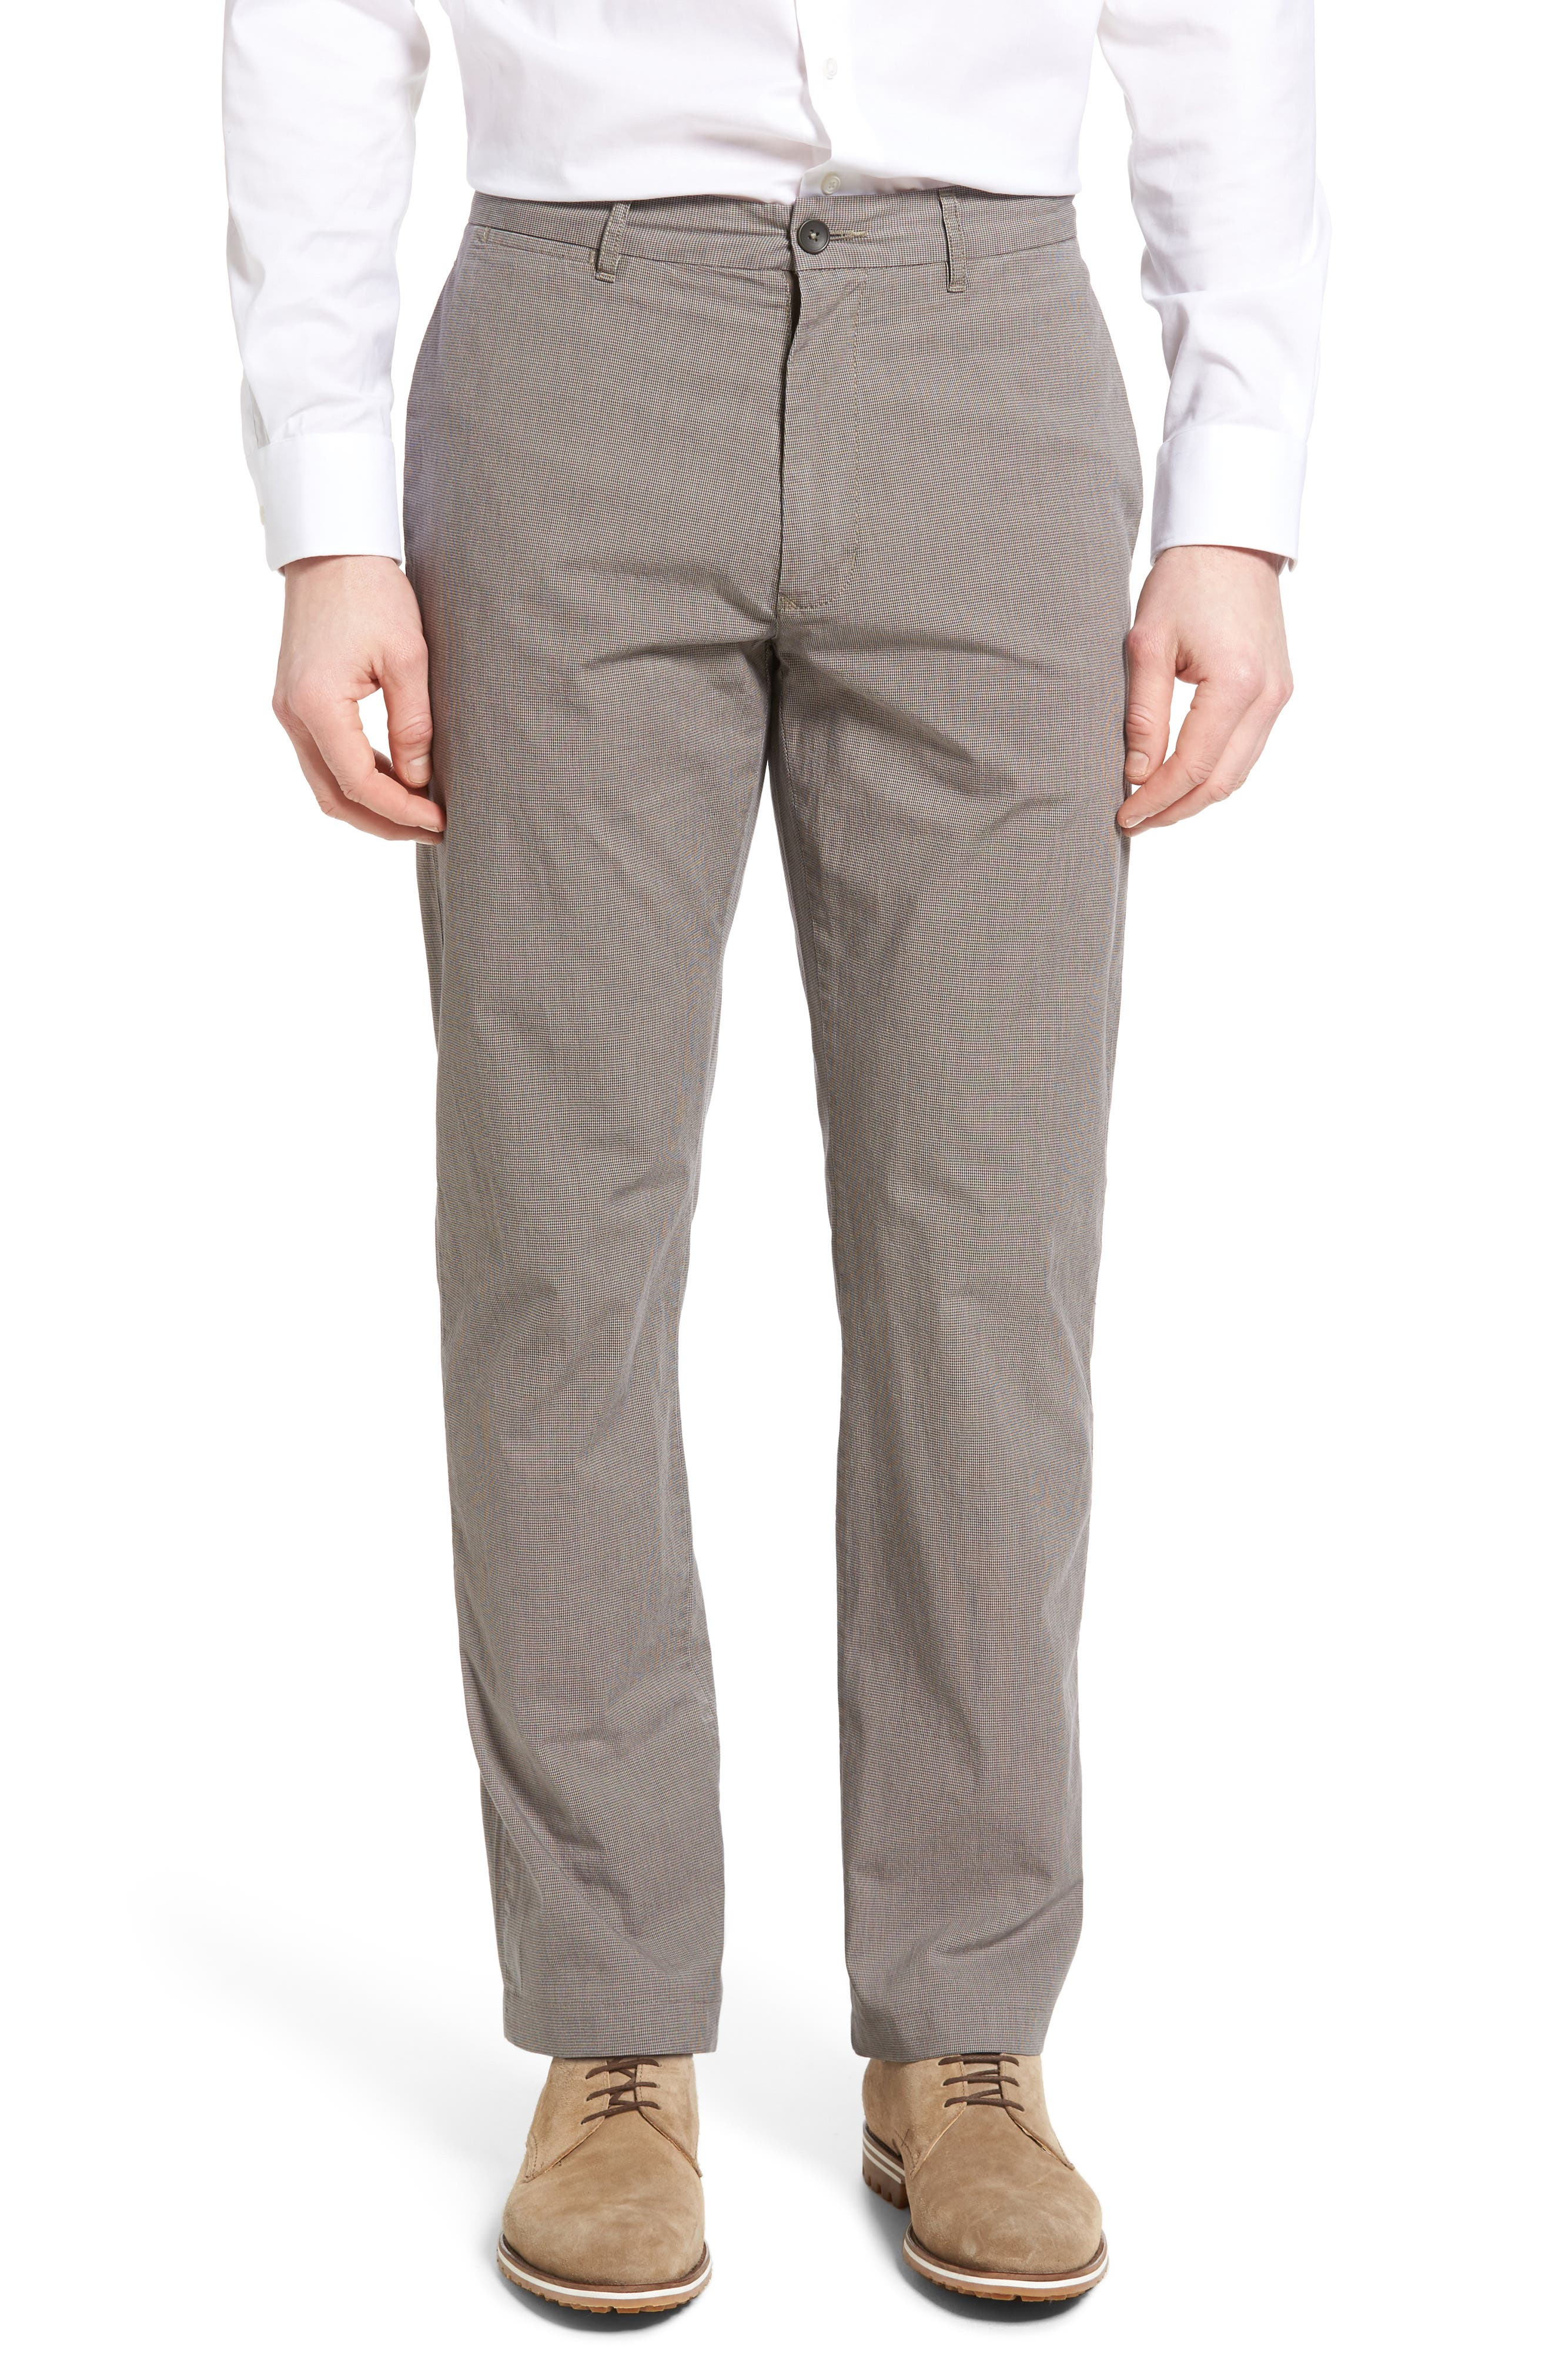 Woodward Regular Fit Trousers,                         Main,                         color, Natural